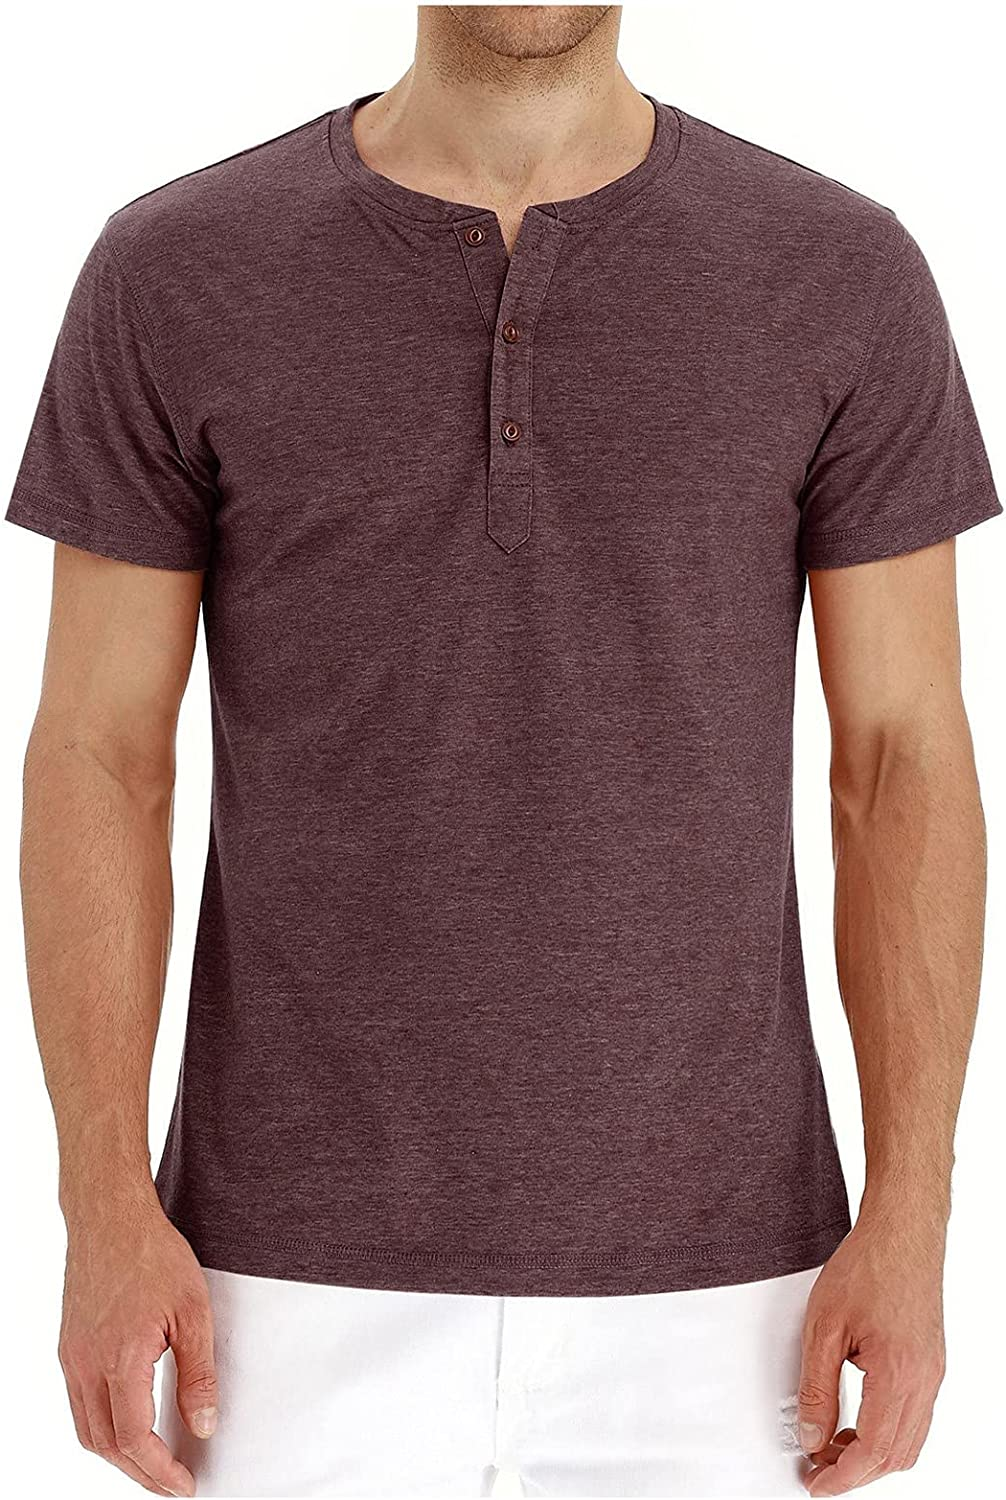 WOCACHI Button Up Henley T-shirts for Mens, Crewneck Basic Short Sleeve Casual Tee Tops Comfy Front Placket Shirts